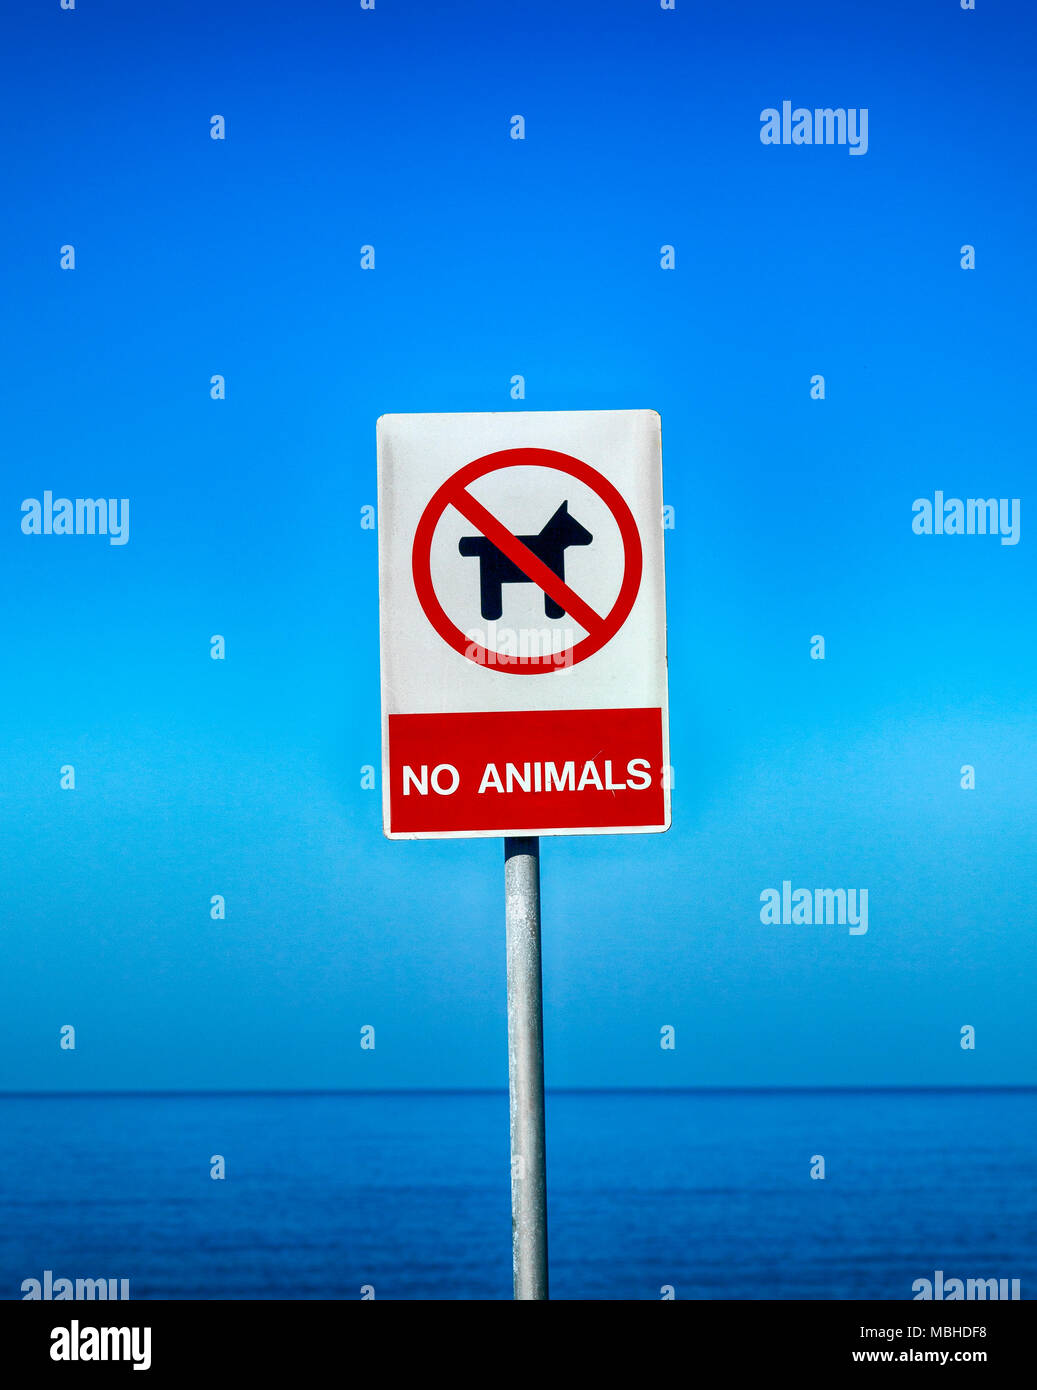 No Animals sign against blue sky and sea. Stock Photo